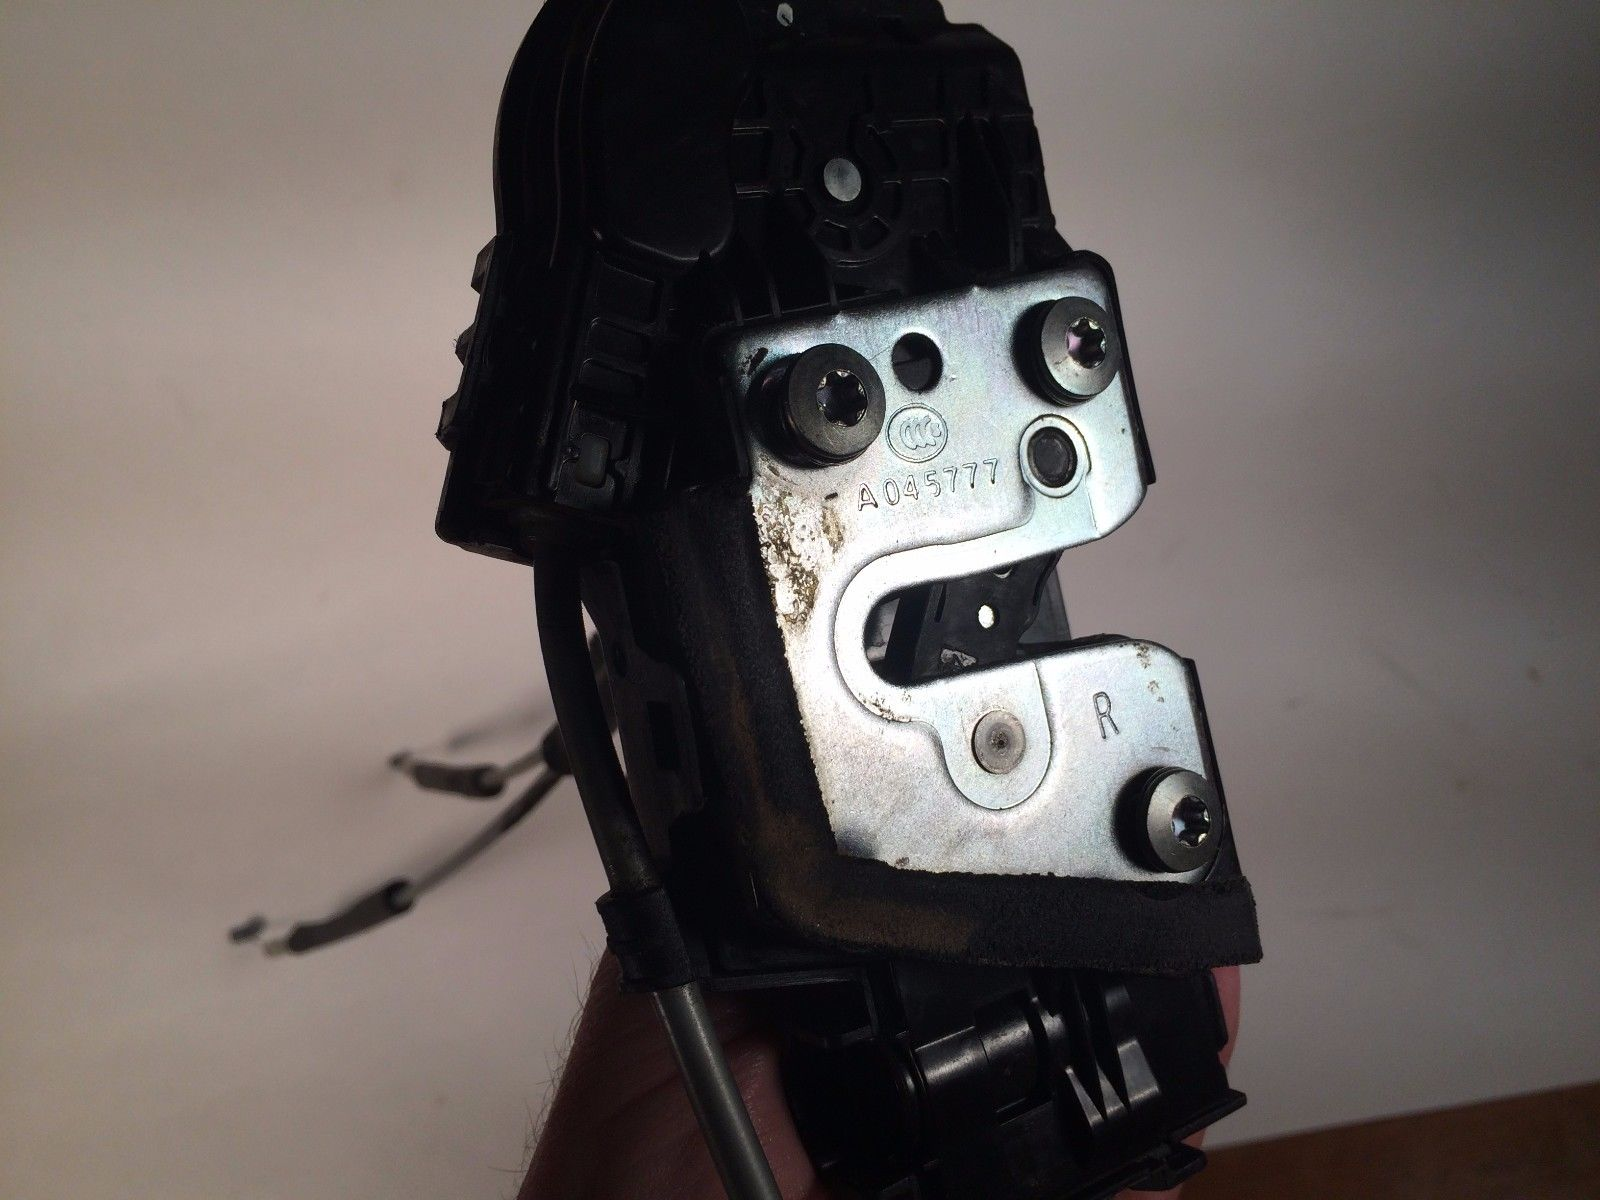 2010-2013 KIA SOUL RIGHT RH PASSENGER SIDE FRONT REAR DOOR LOCK ACTUATOR LATCH Does not apply